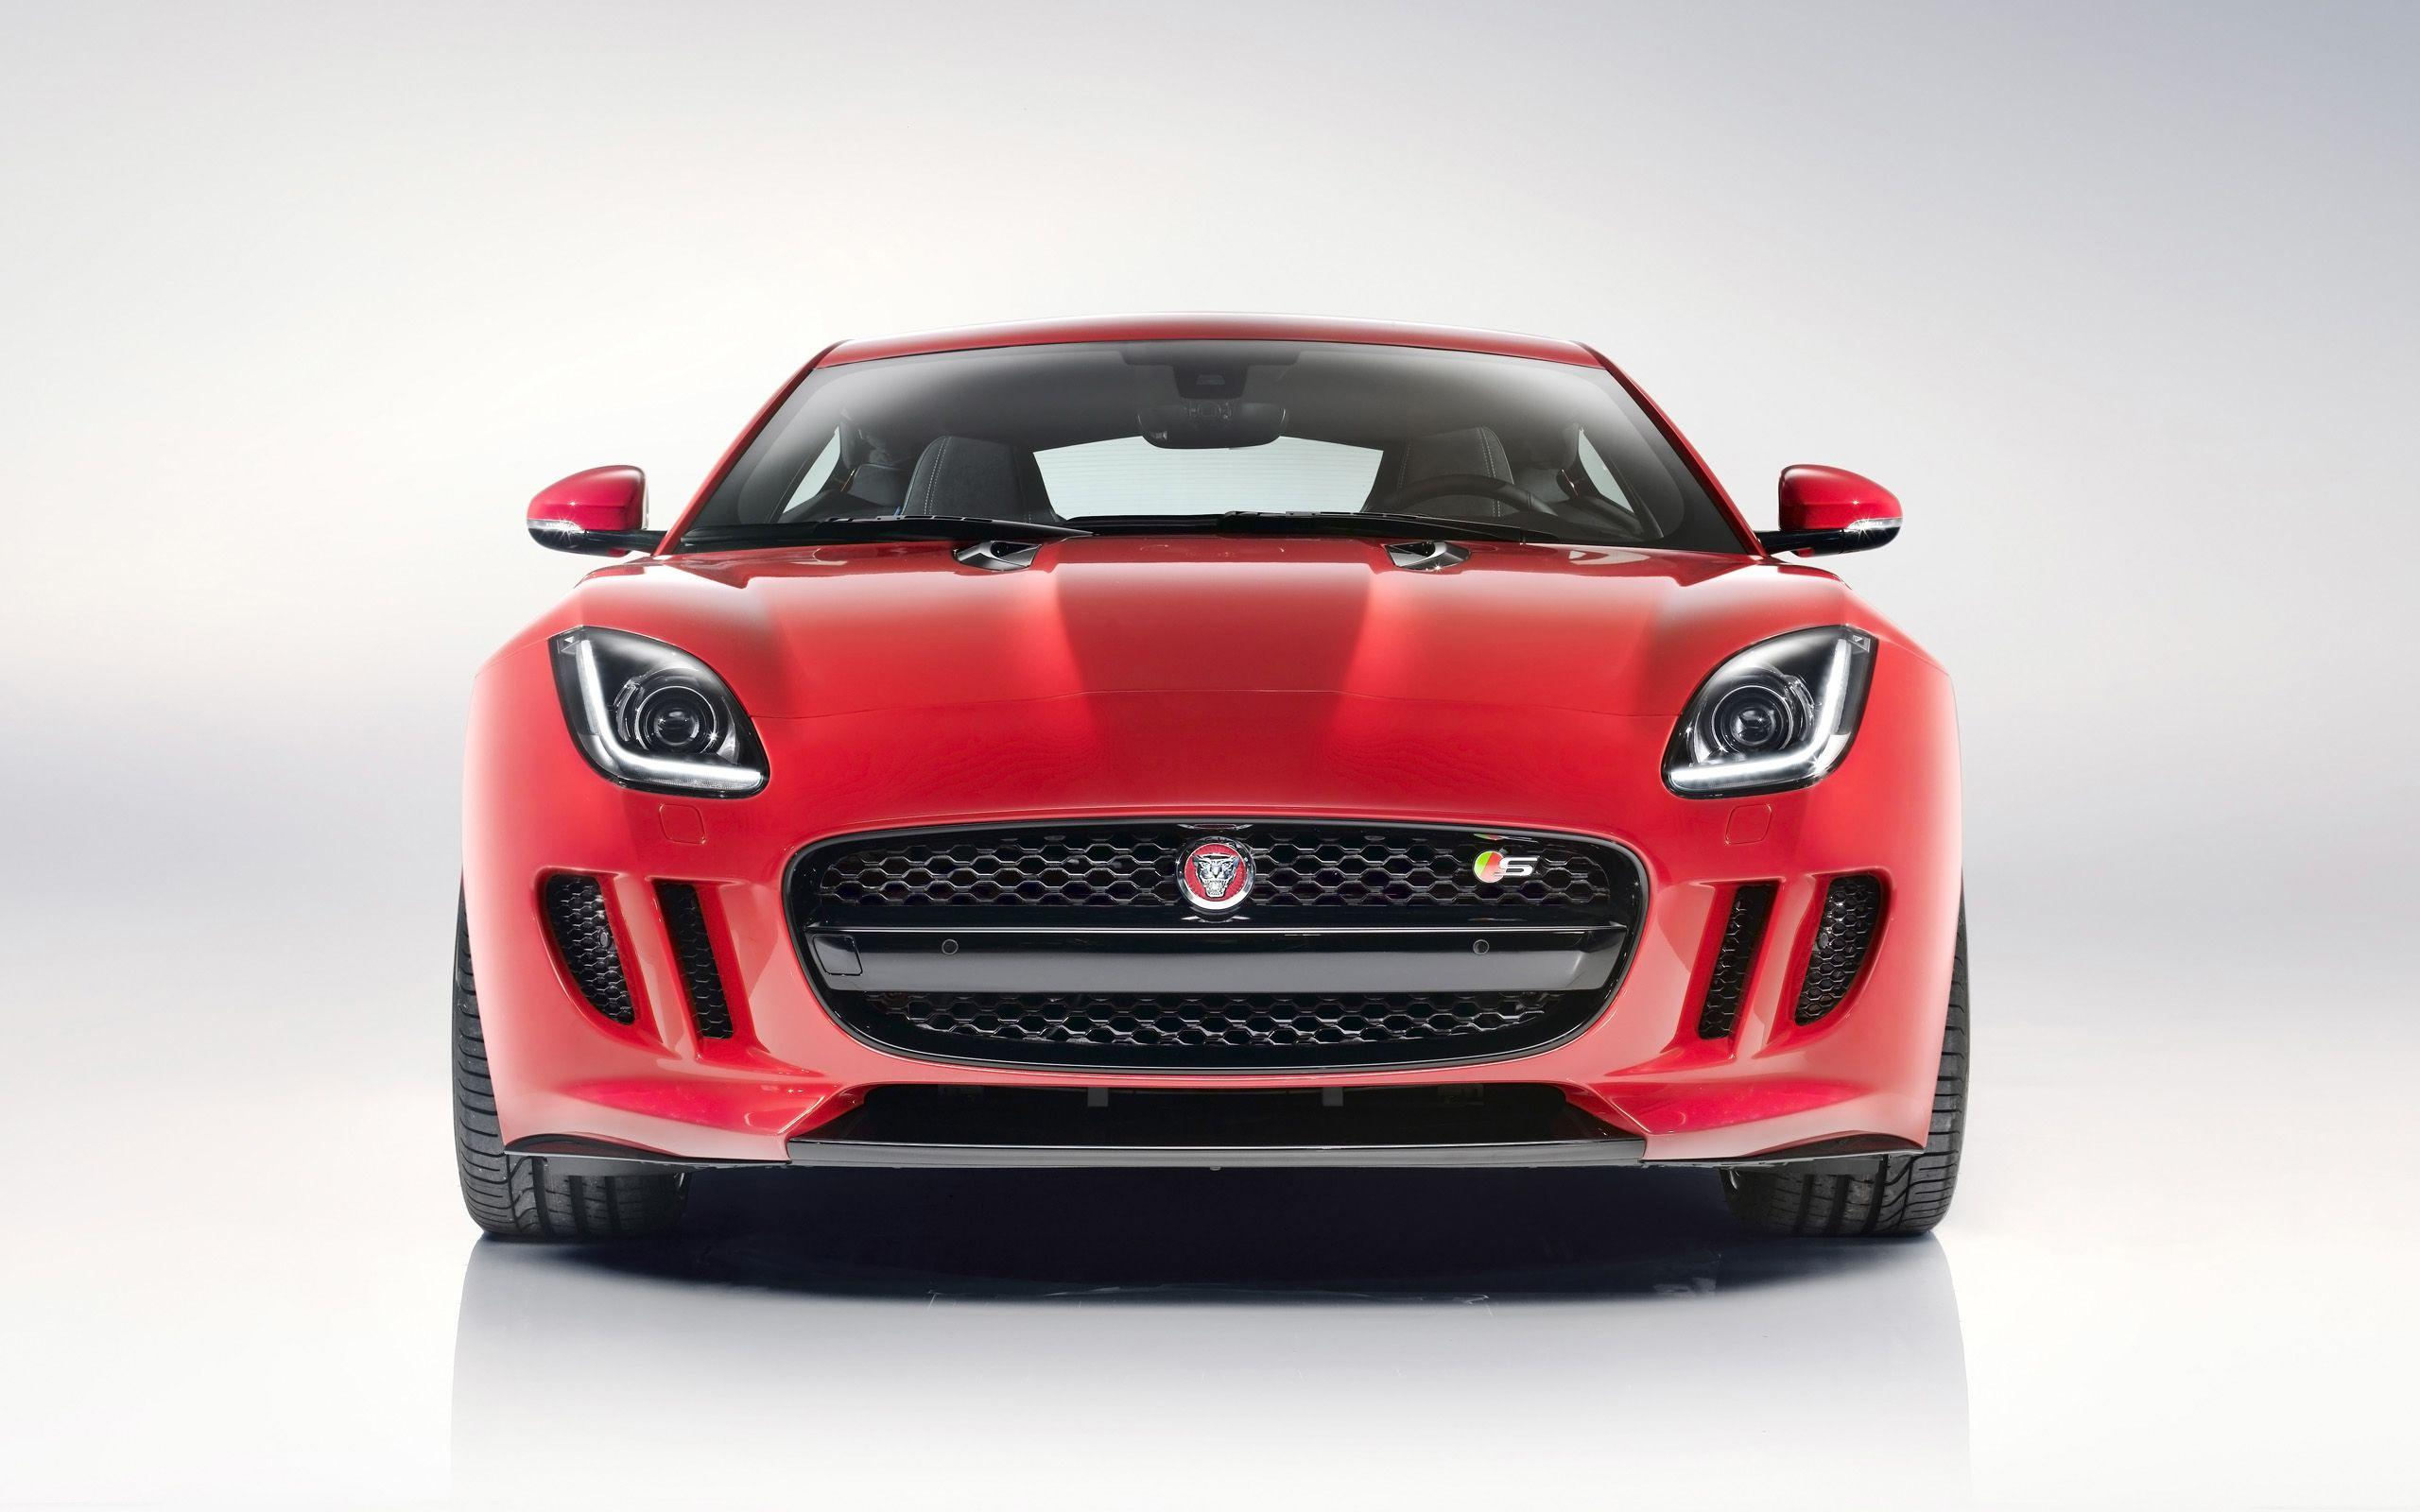 Jaguar F Type R HD Wallpapers Jaguar F Type R high quality and